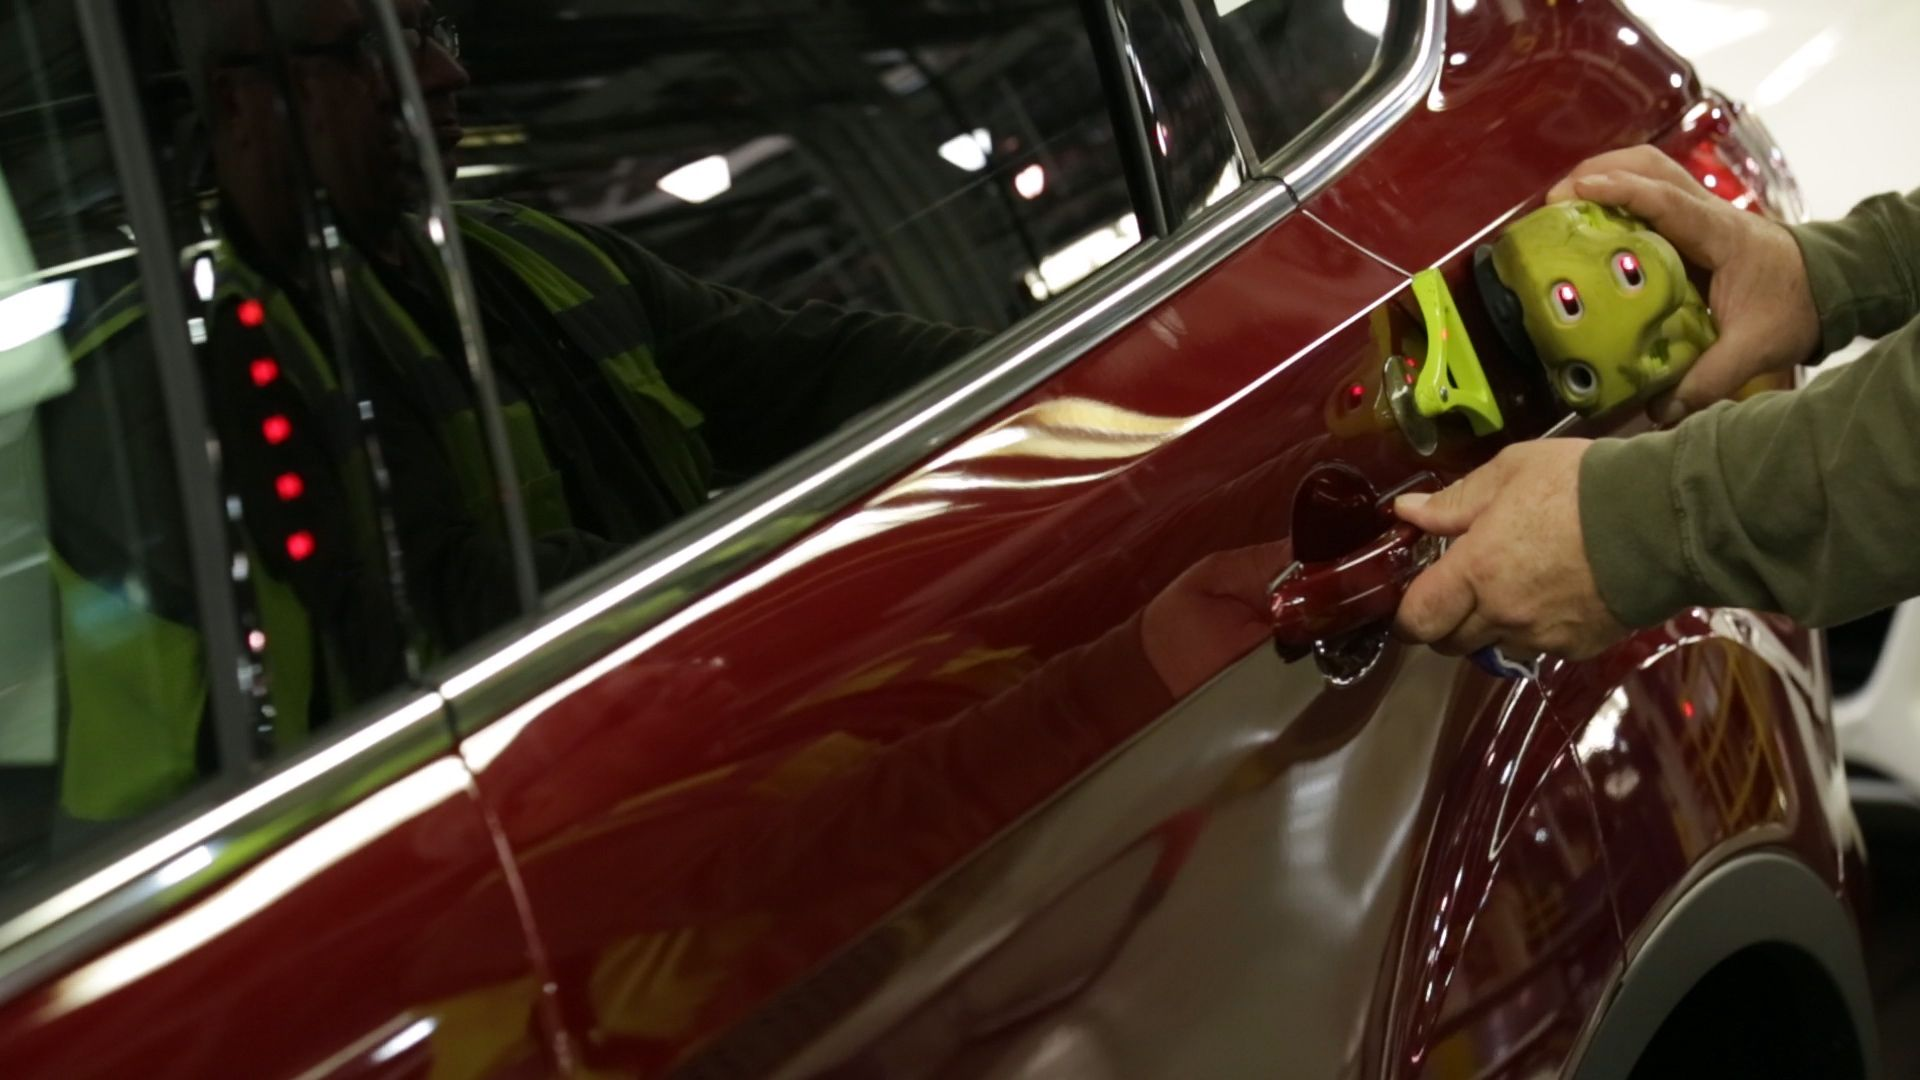 Louisville Assembly Plant, March 18, 2016-- To ensure that closing a door on Escape is consistently effortless, a worker applies suction cup-backed sensors to either side of a door opening, then closes the door by hand to get a velocity reading, which calculates the amount of effort required. Once it's verified the amount of effort does not exceed the Ford standard, the tools are quickly moved to the next door for another test. Customer benefit is that minimum effort is required to close…